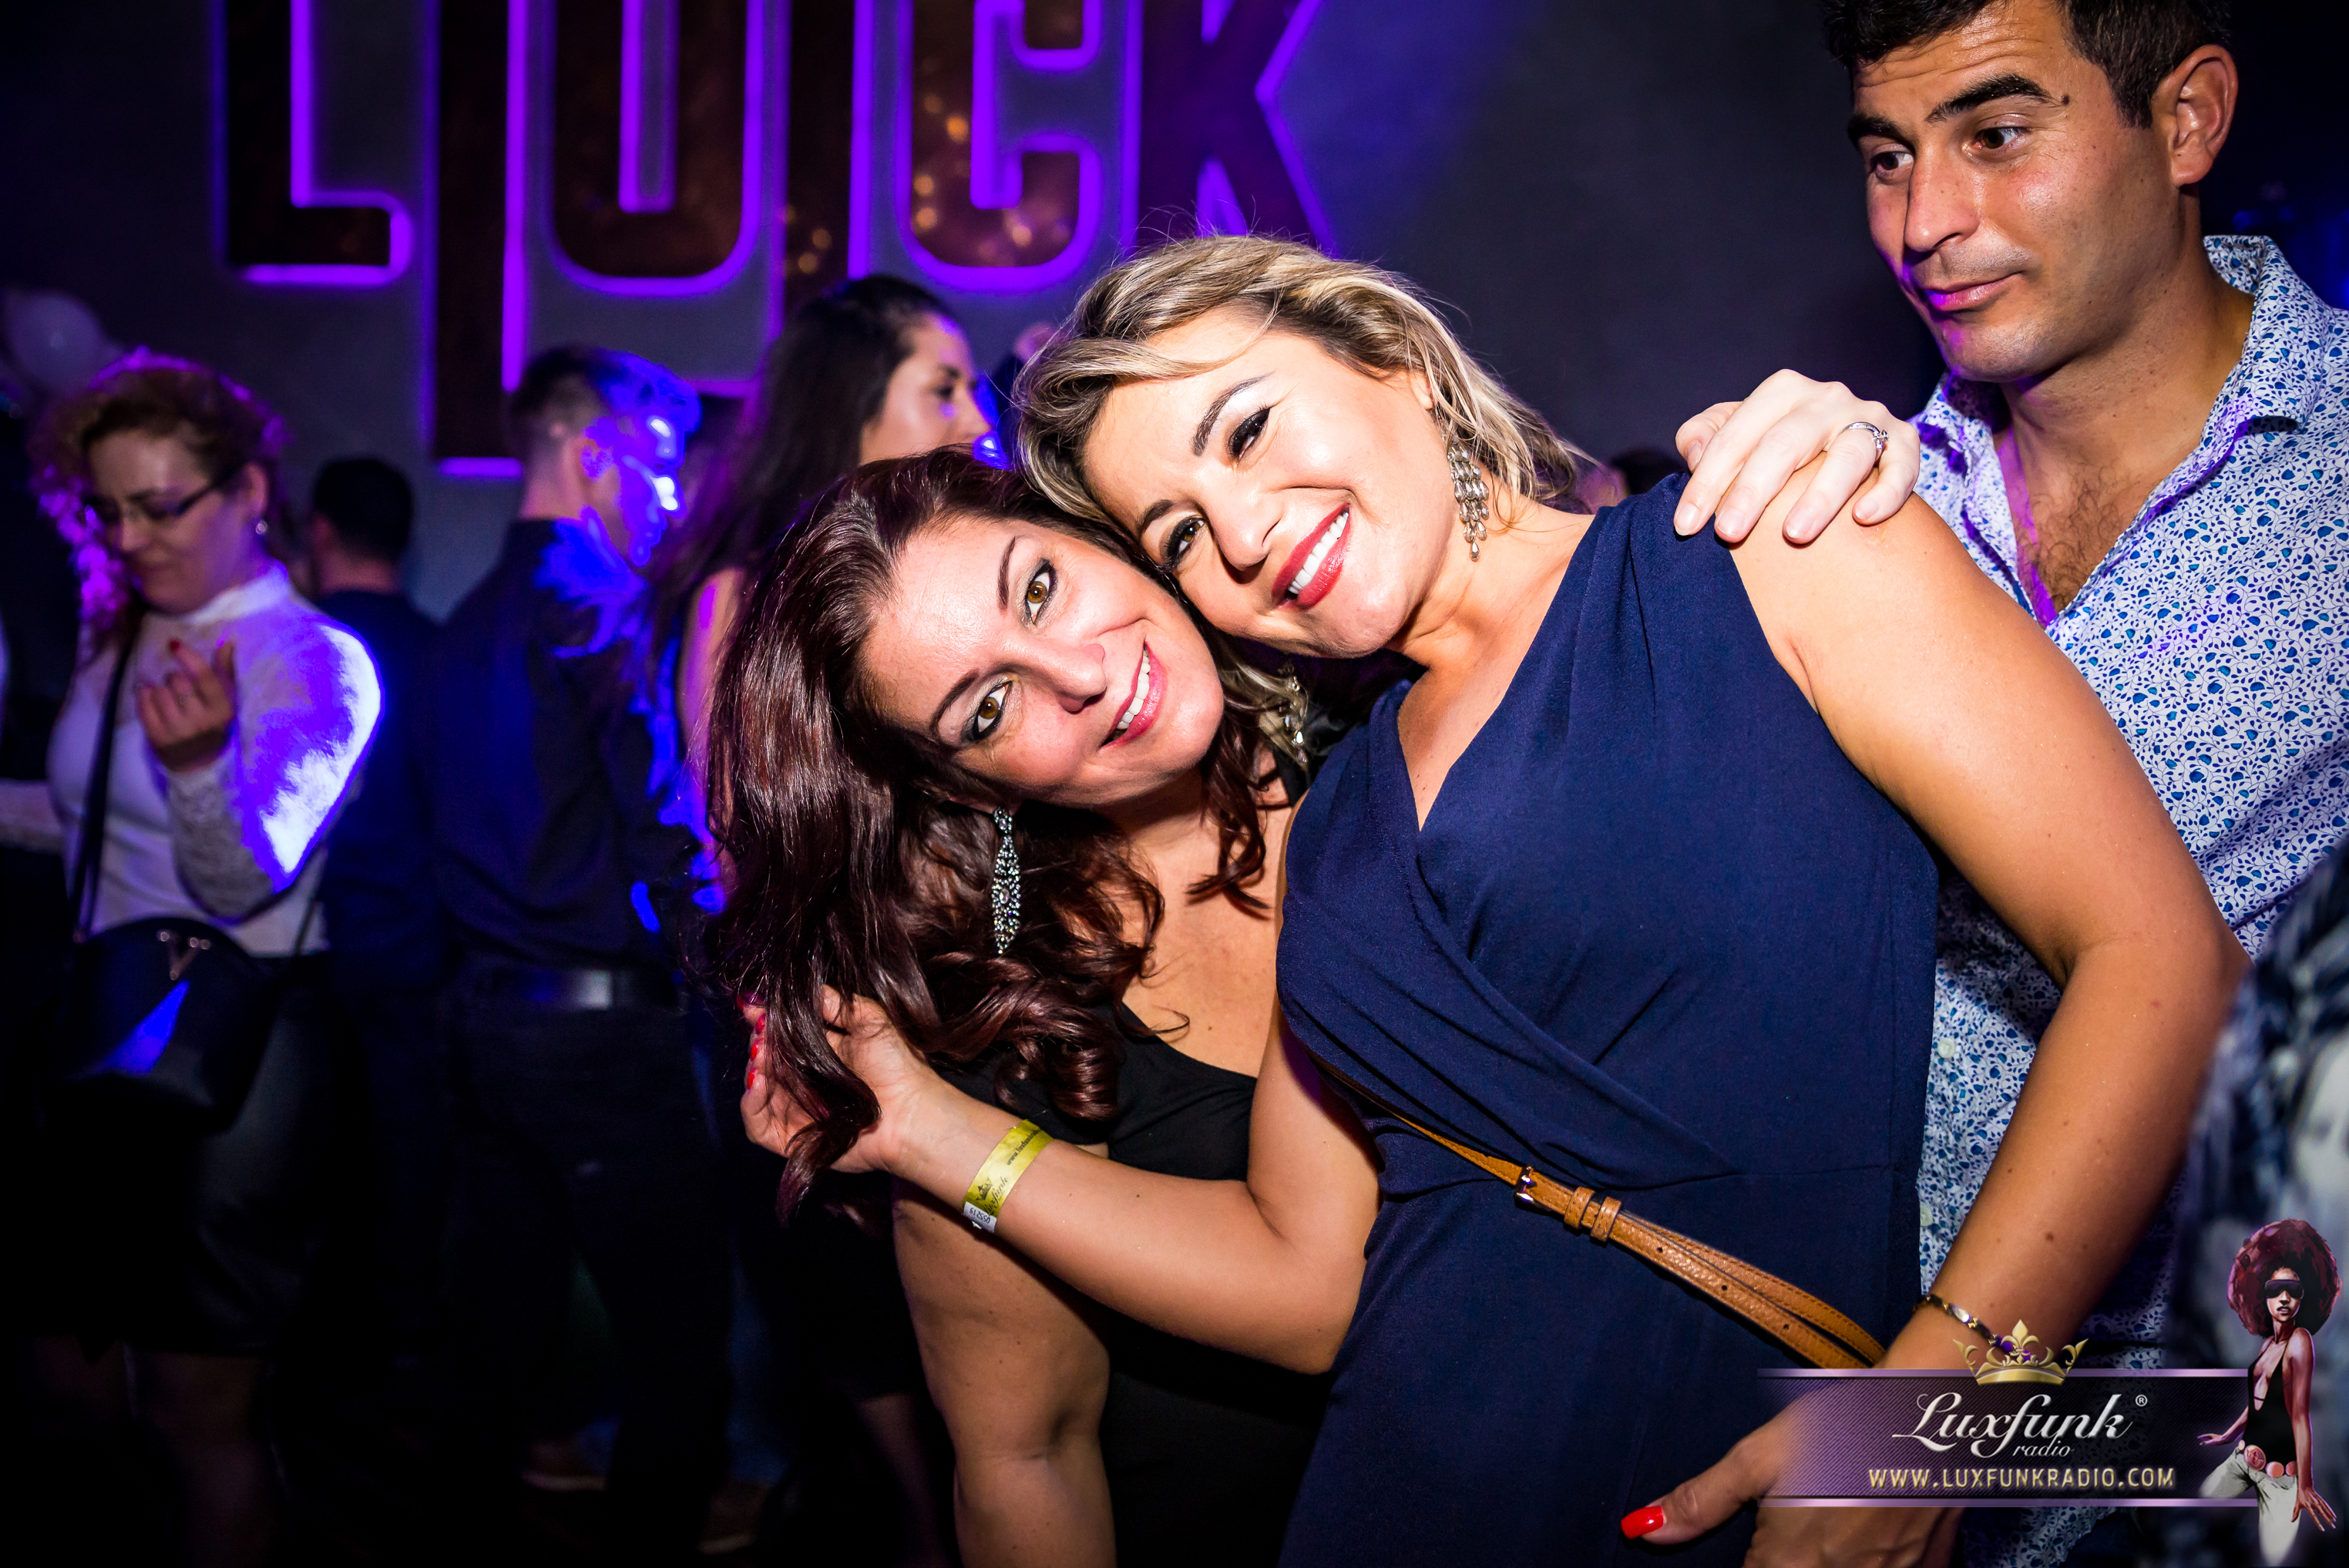 luxfunk-radio-funky-party-20191108-lock-budapest-1318